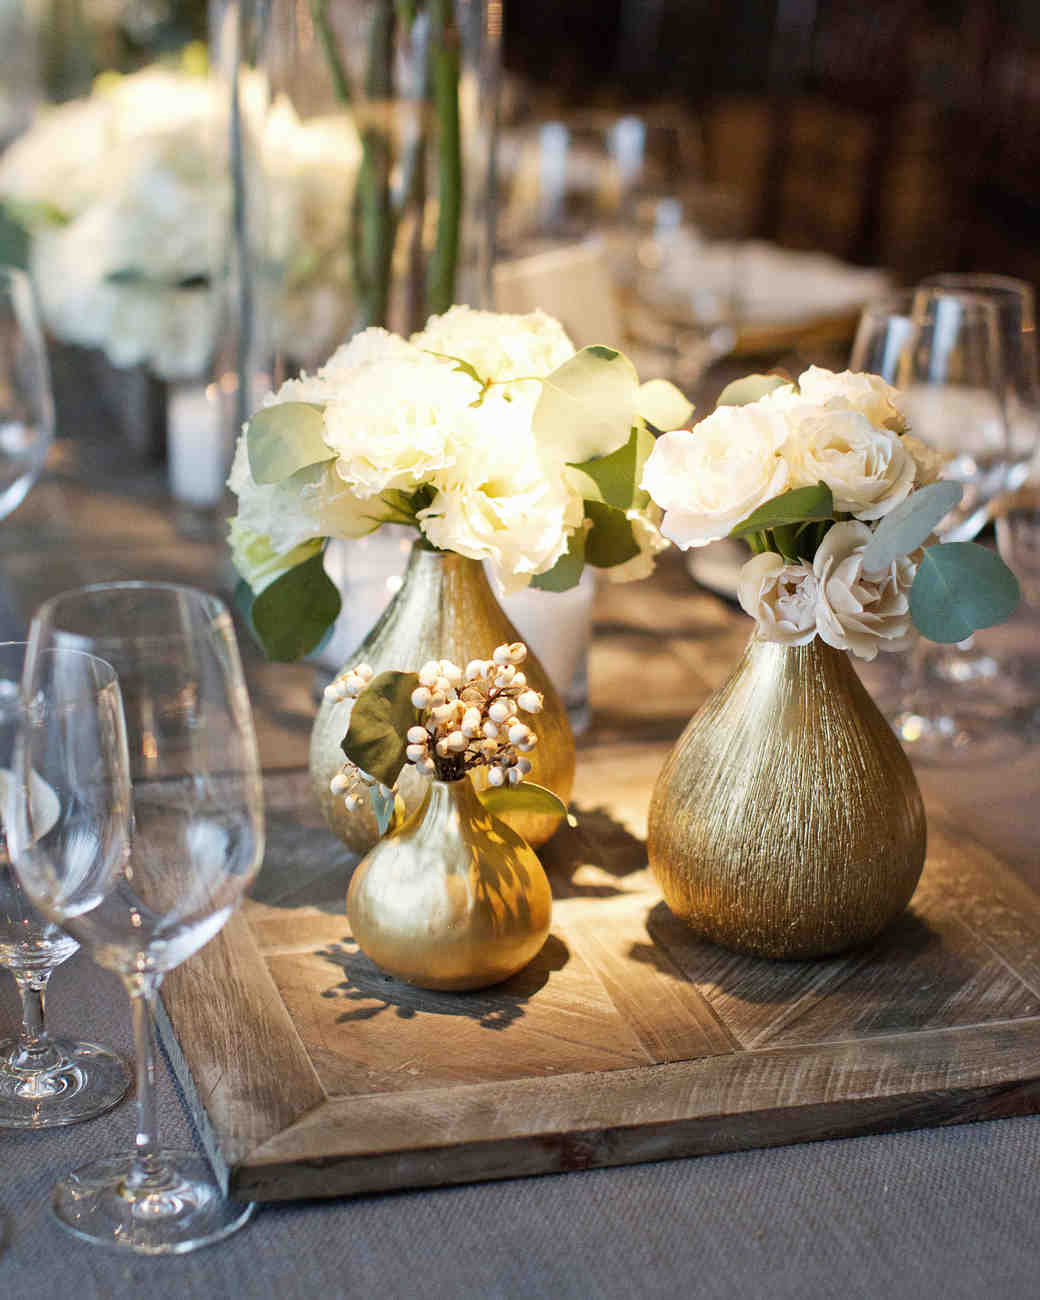 Ideas For Wedding Flower Arrangements: Glamorous Wedding Centerpieces